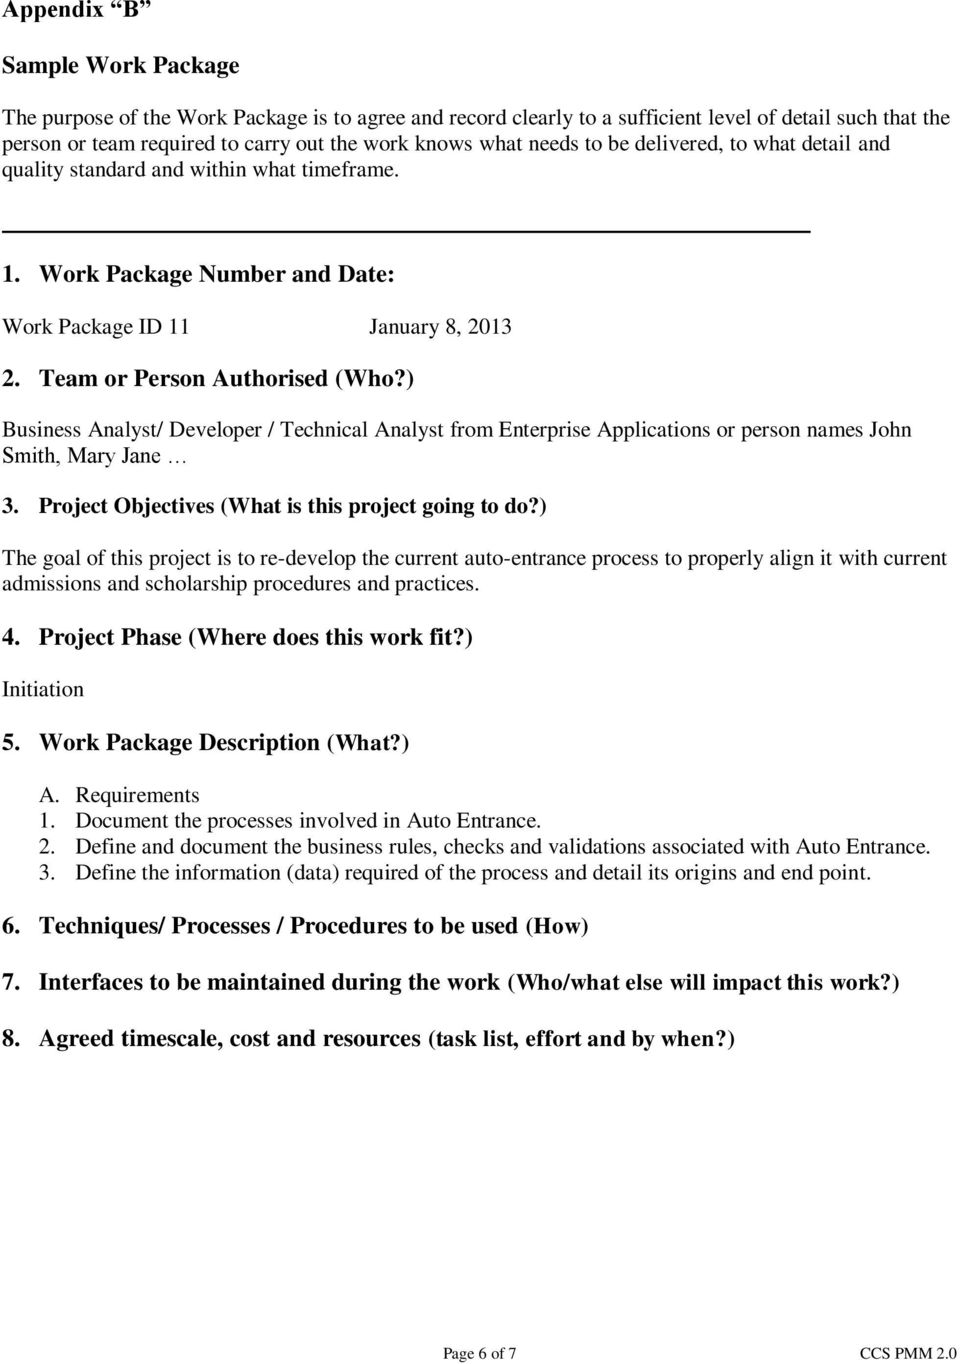 ) Business Analyst/ Developer / Technical Analyst from Enterprise Applications or person names John Smith, Mary Jane 3. Project Objectives (What is this project going to do?